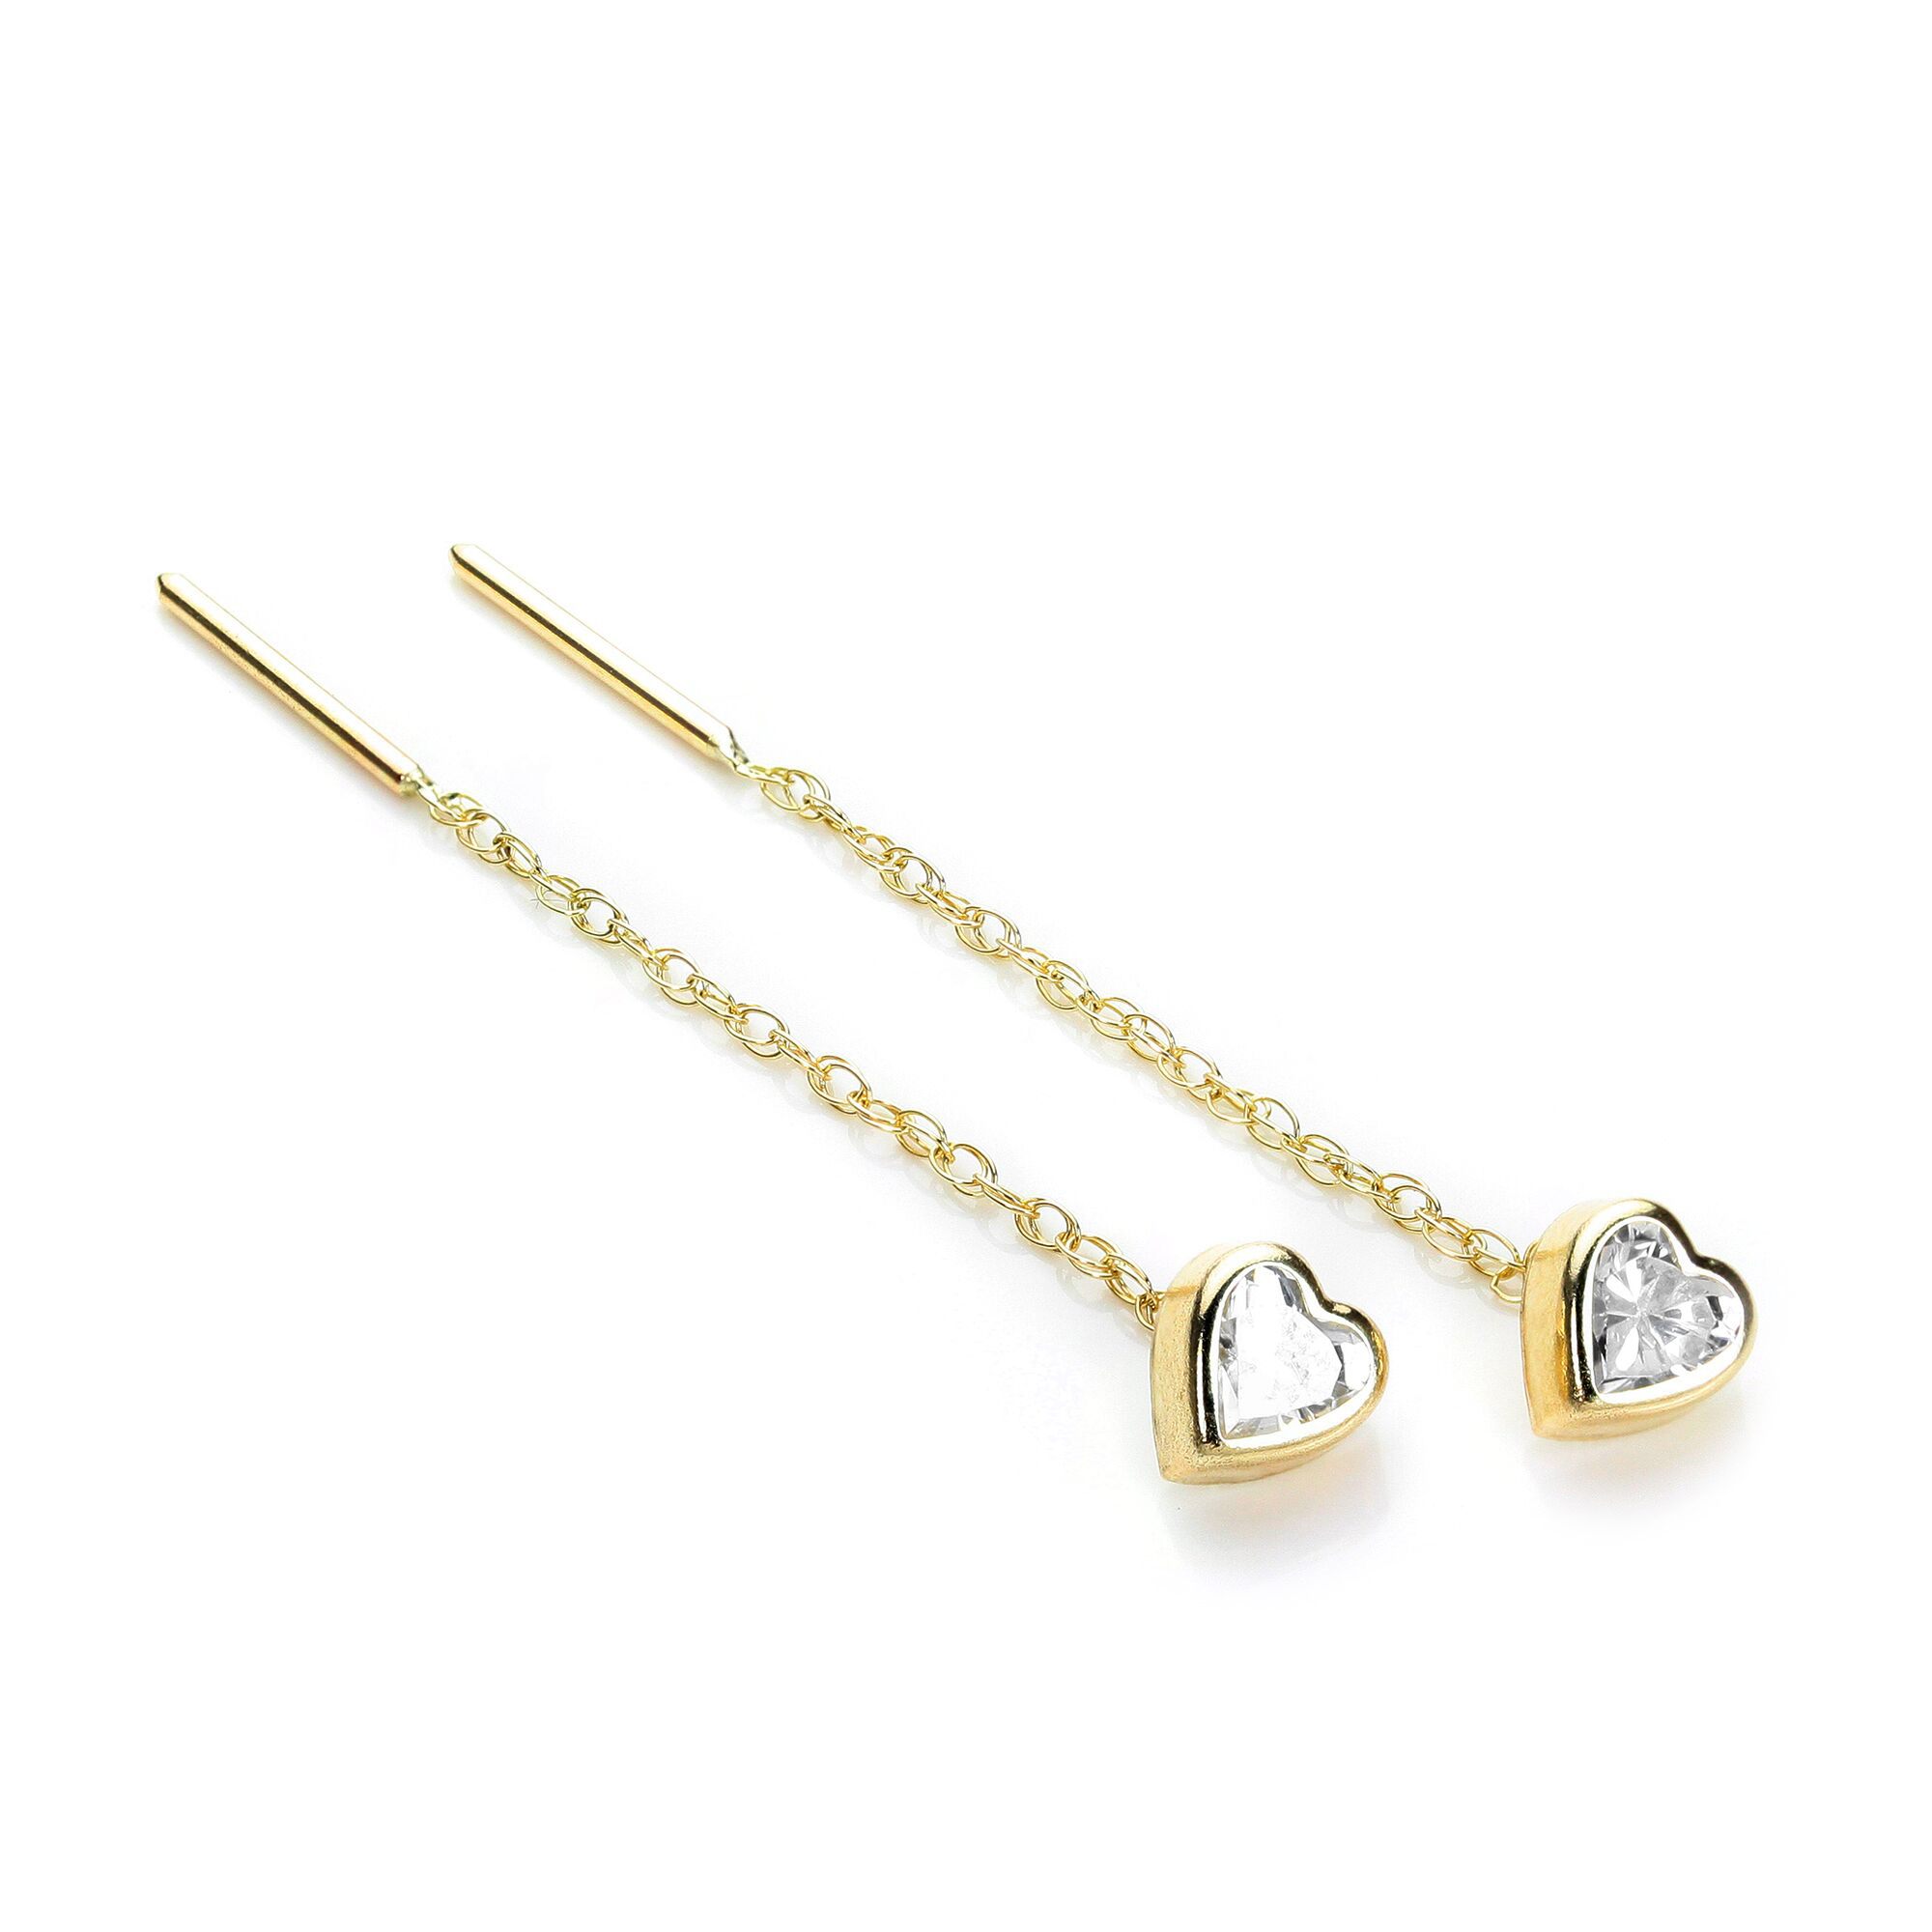 An image of 9ct Gold 5mm Heart Shaped CZ Crystal Rubover Pull Thru Earrings